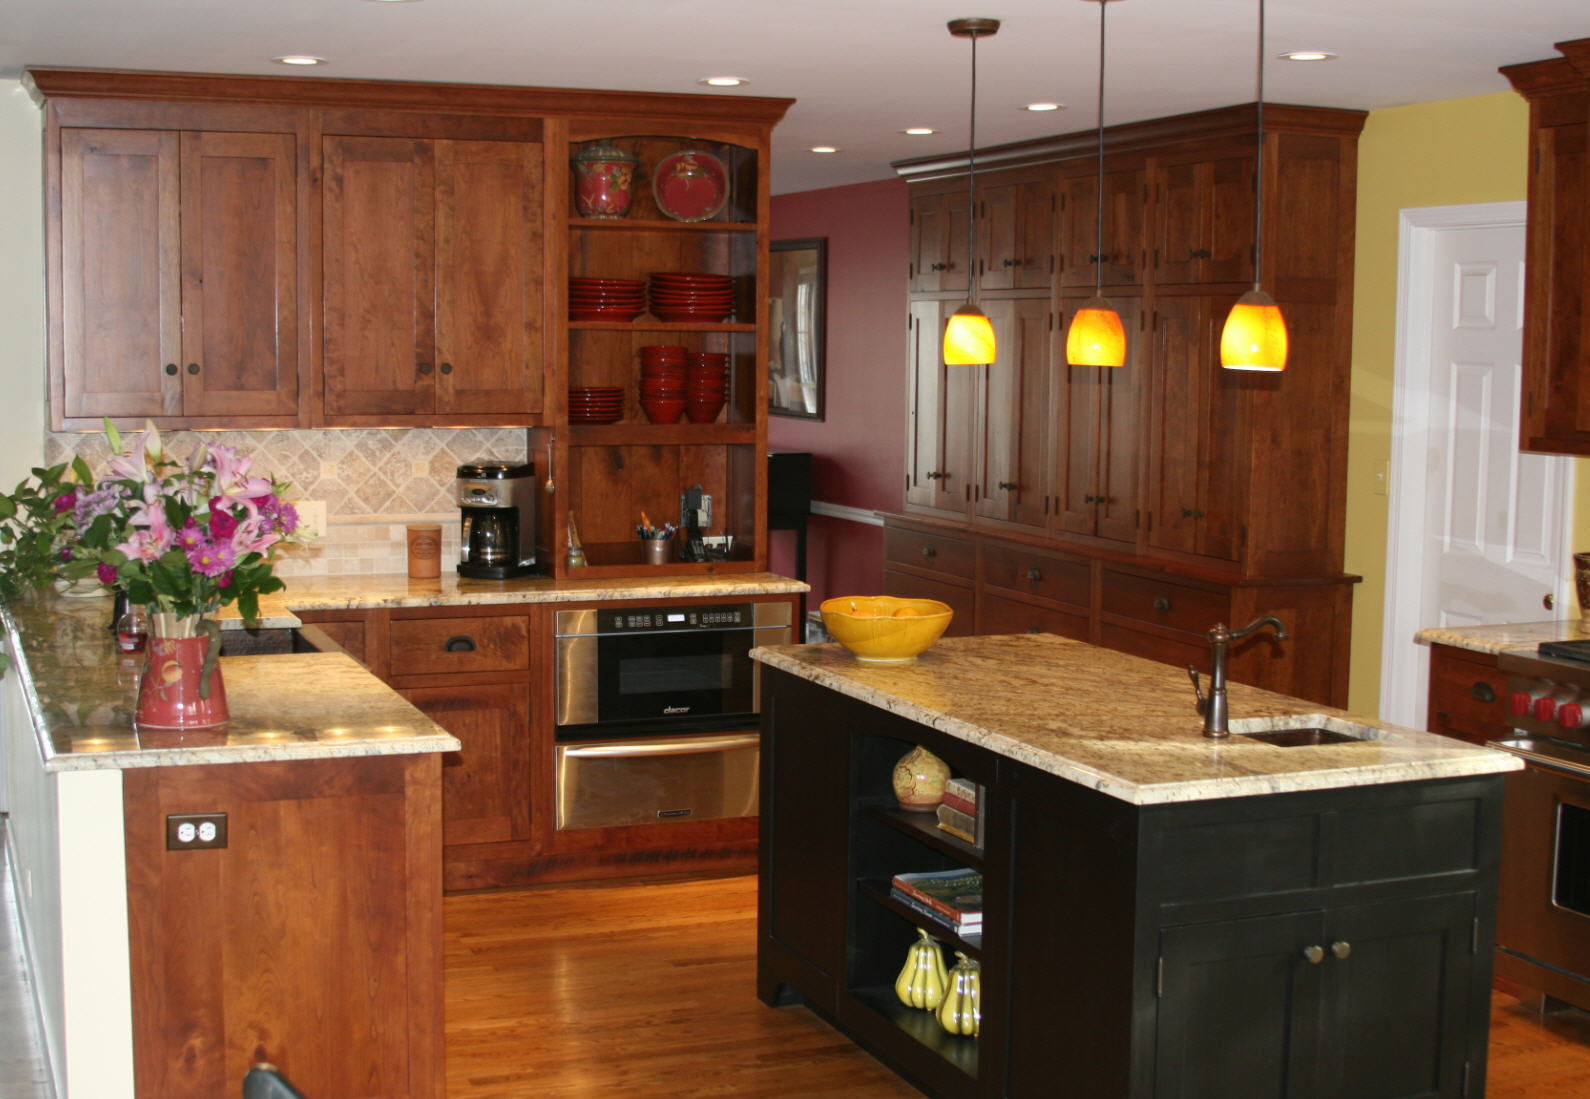 projects lists image results cherries kitchens kitchens projects